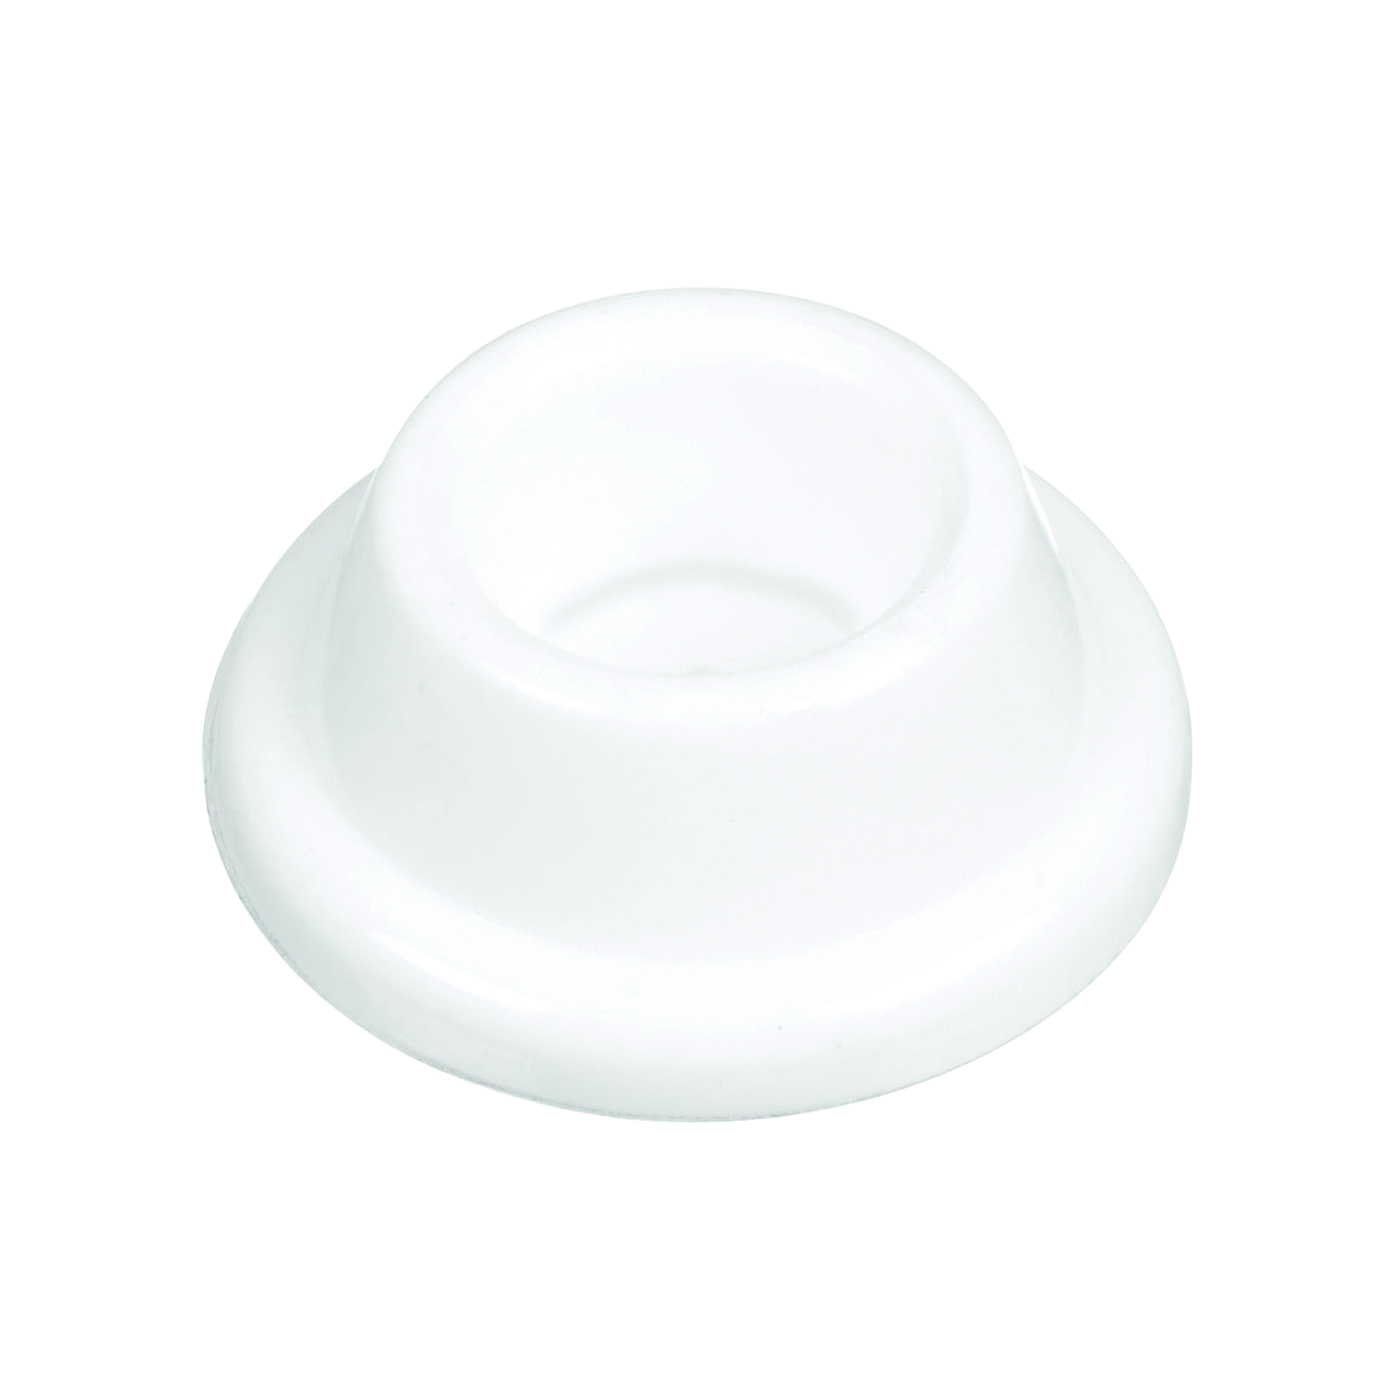 Picture of National Hardware N243-816 Door Stop, 1.9 in Dia Base, 0.72 in Projection, Plastic, White